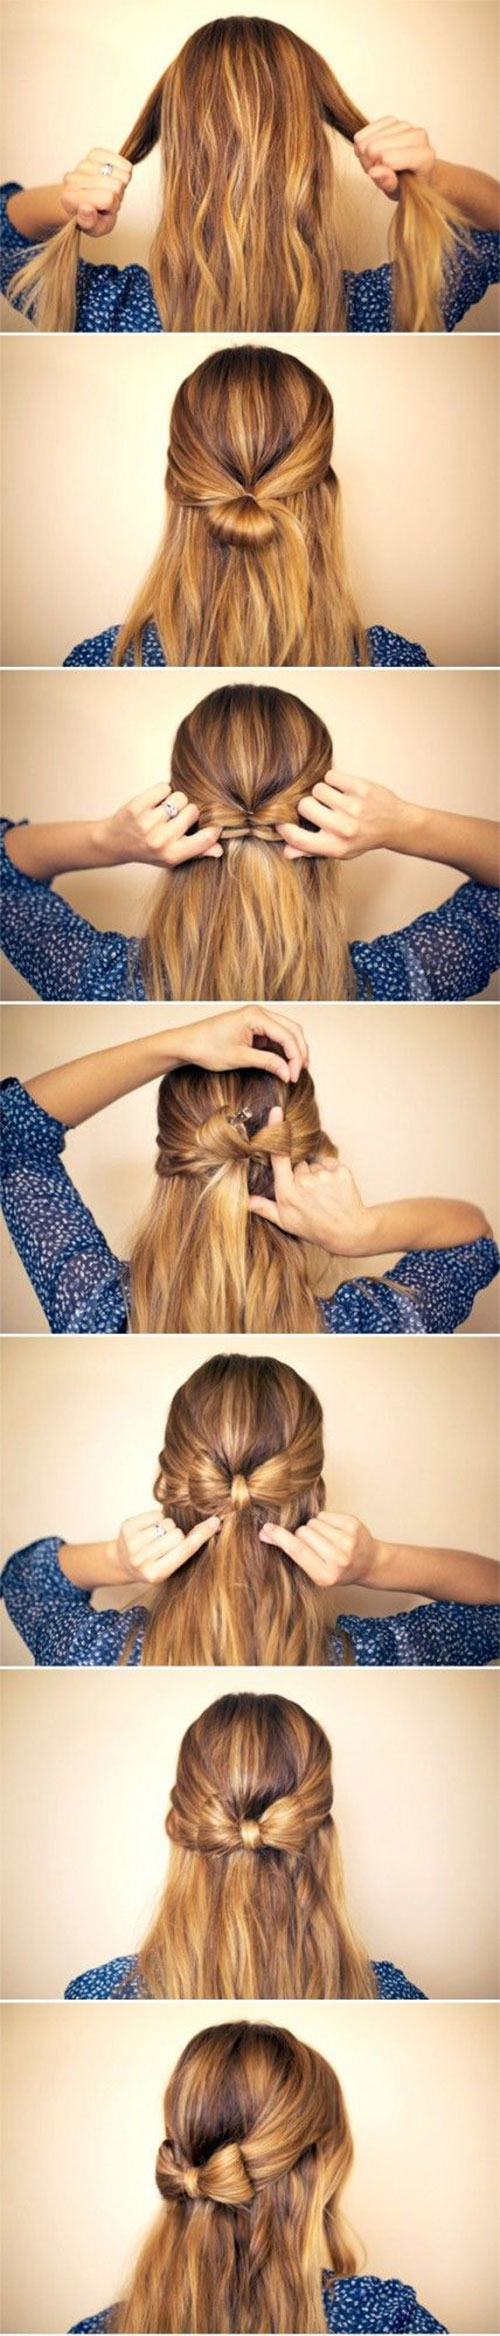 12-Easy-Step-By-Step-Summer-Hairstyle-Tutorials-For-Beginners-2017-13